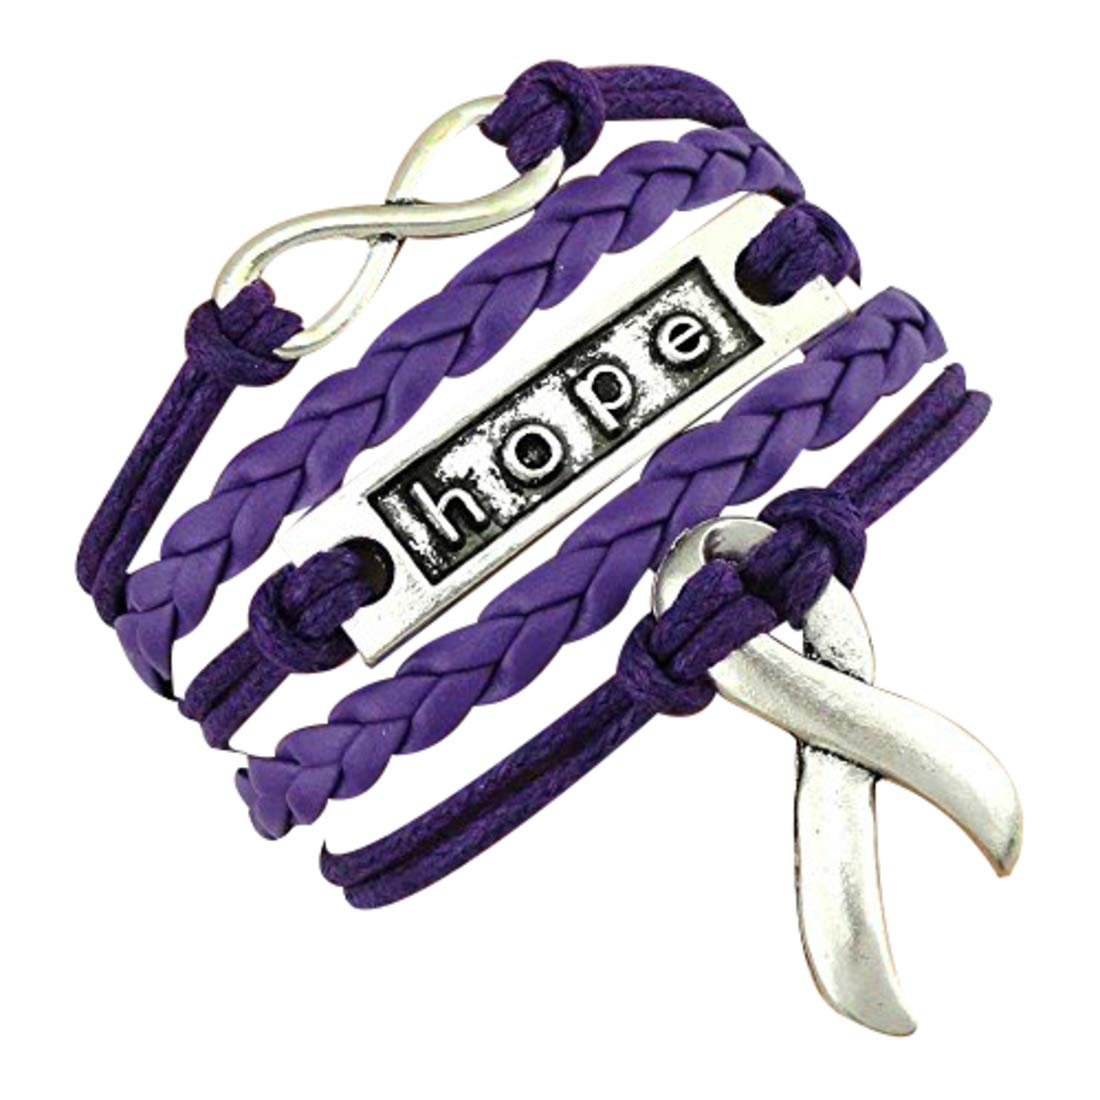 075ca406b68 Infinity Collection Cancer Awareness Purple Ribbon Bracelet, Pancreatic  Cancer Bracelet, Awareness Bracelet, Makes The